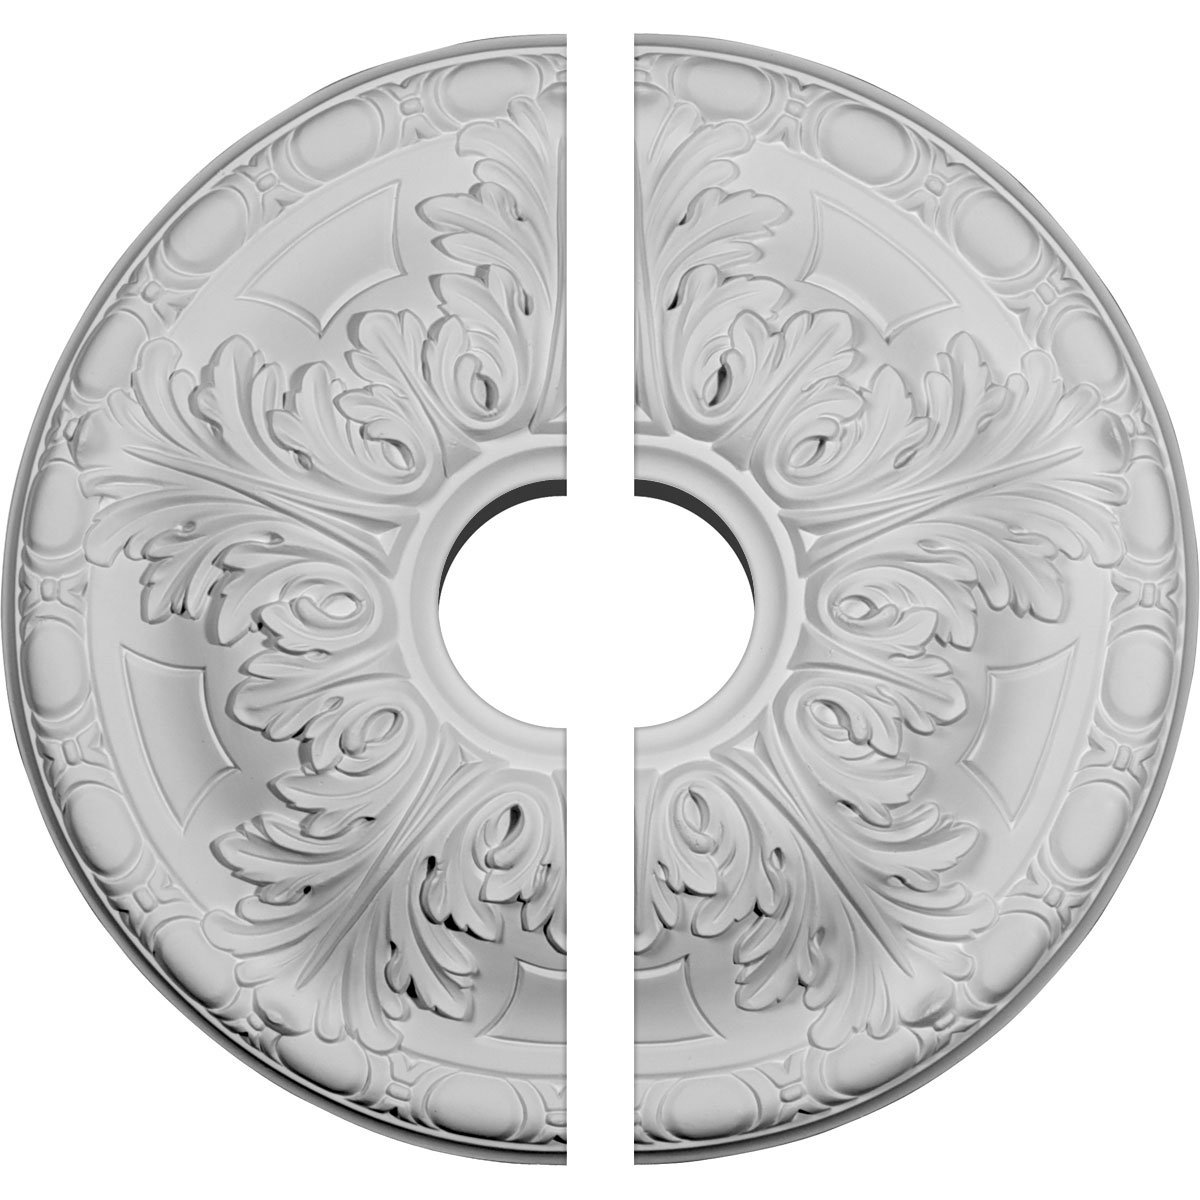 Ekena Millwork CM16GA2-03500 15 3/4''OD x 3 1/2''ID x 5/8''P Granada Ceiling Medallion, Two Piece (Fits Canopies up to 4 1/4''), Factory Primed White